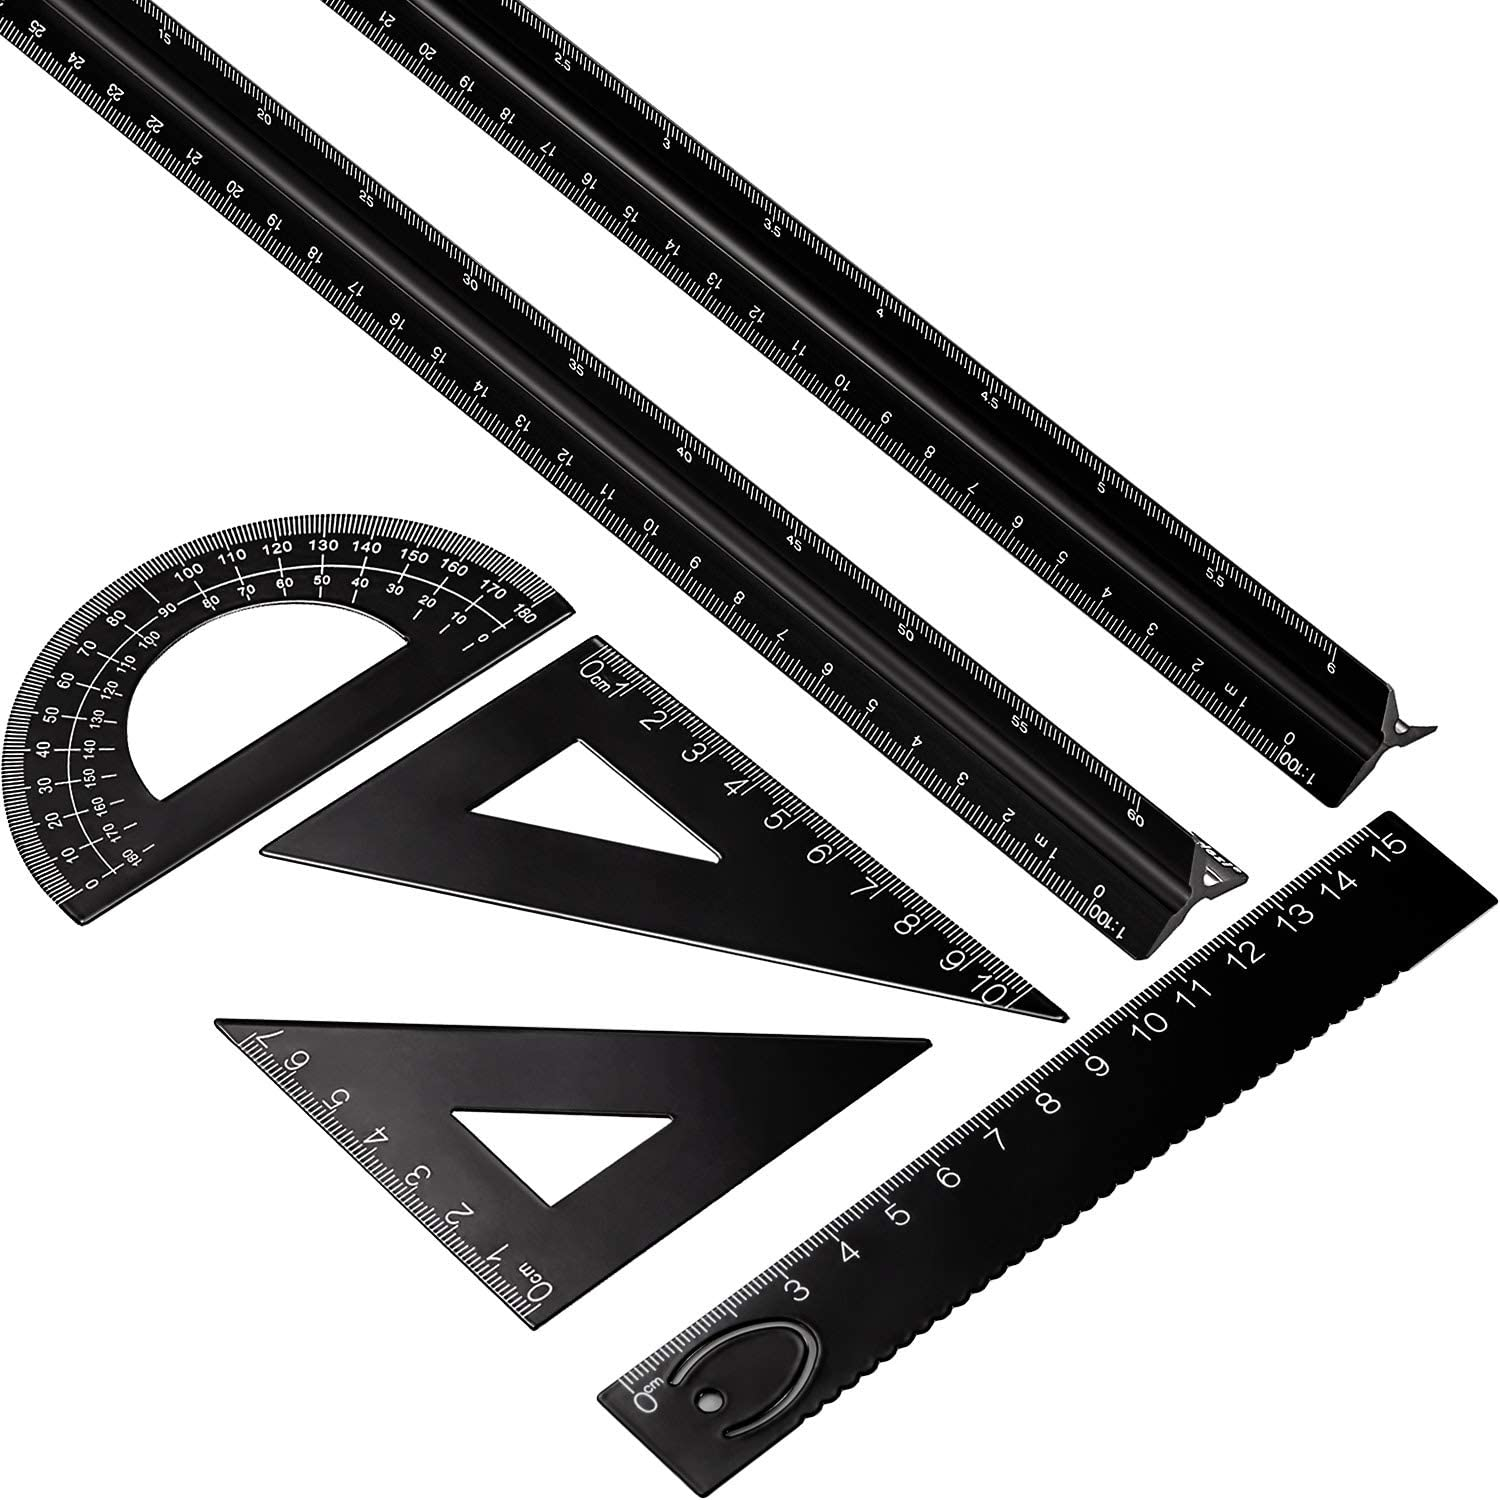 2 Pieces 12 Inch Aluminum Scale Ruler with 4 Pieces Aluminum Triangle Ruler Square Set for Students Metric 6 Pieces Aluminum Triangular Architect Scale Ruler Set Draftsman and Engineers Silver